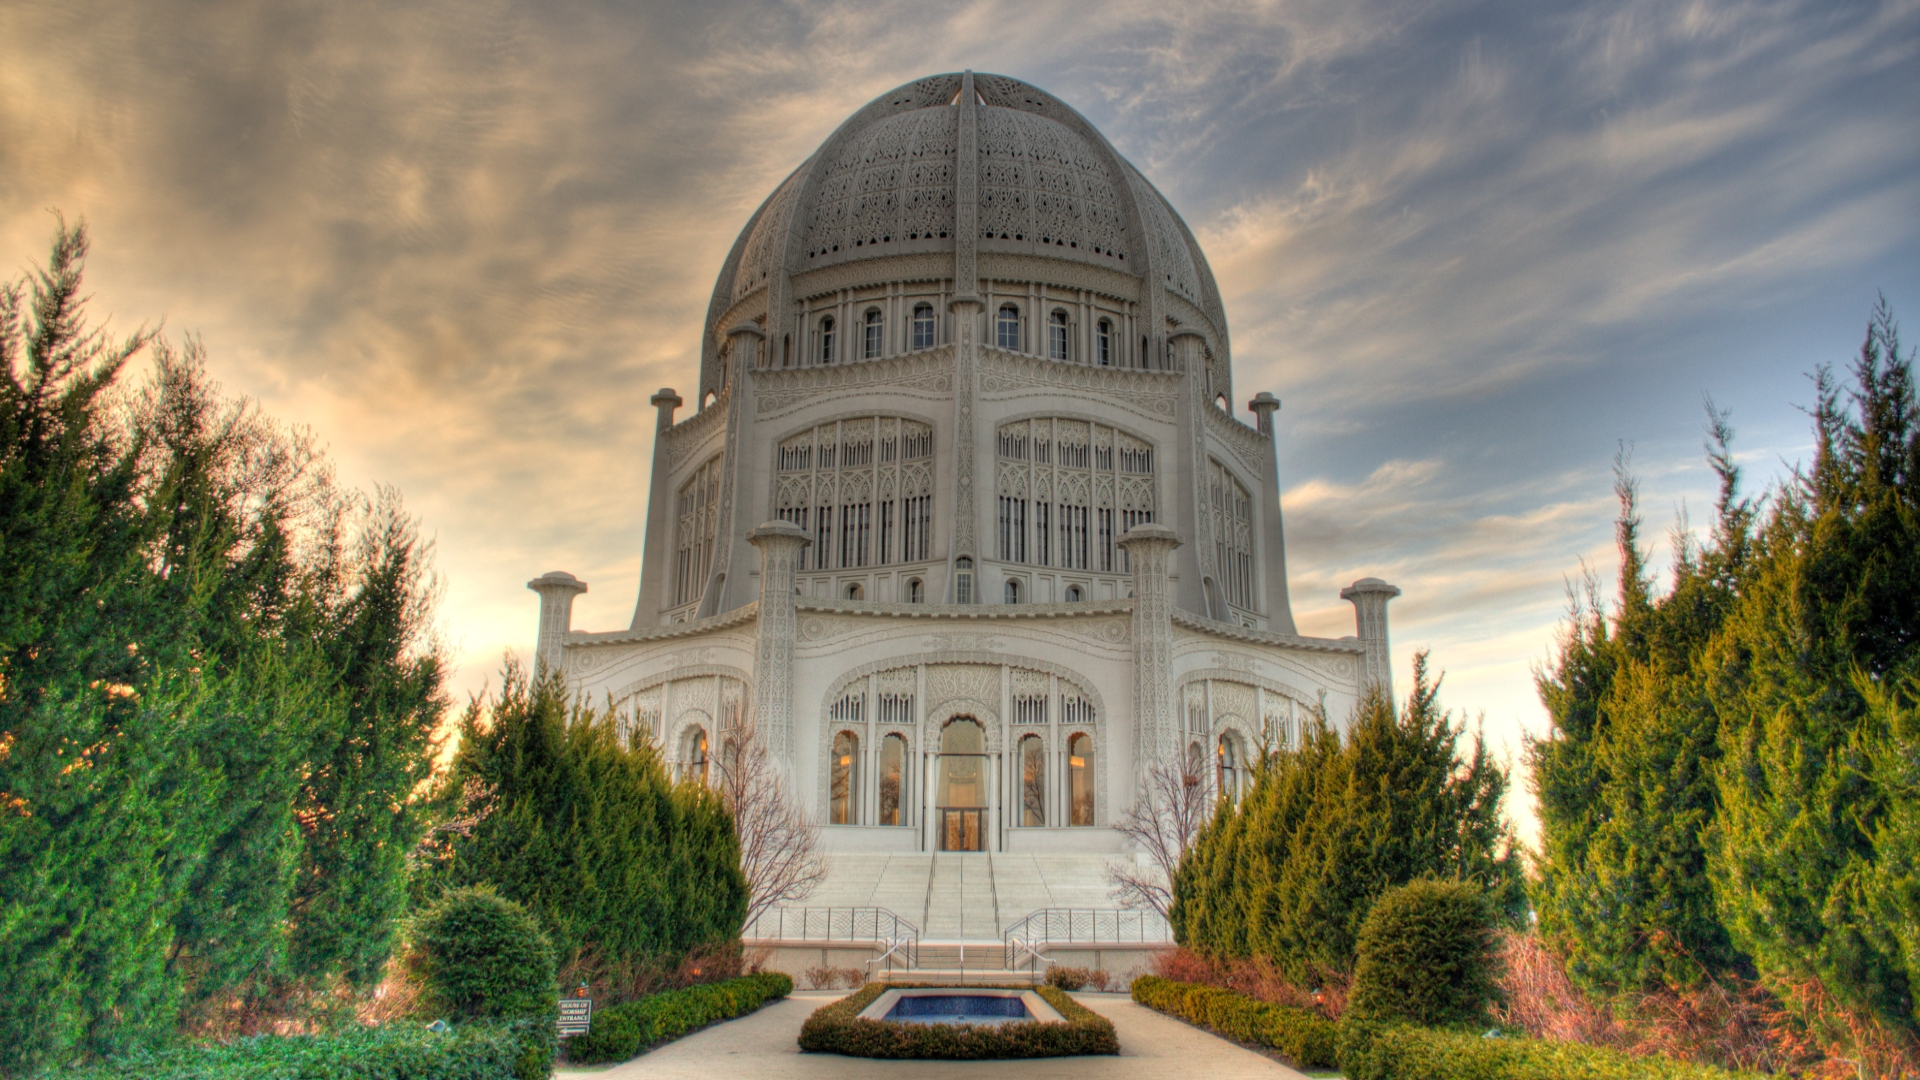 ... Abyss Explore the Collection Temples Religious Baha'i Temple 481178